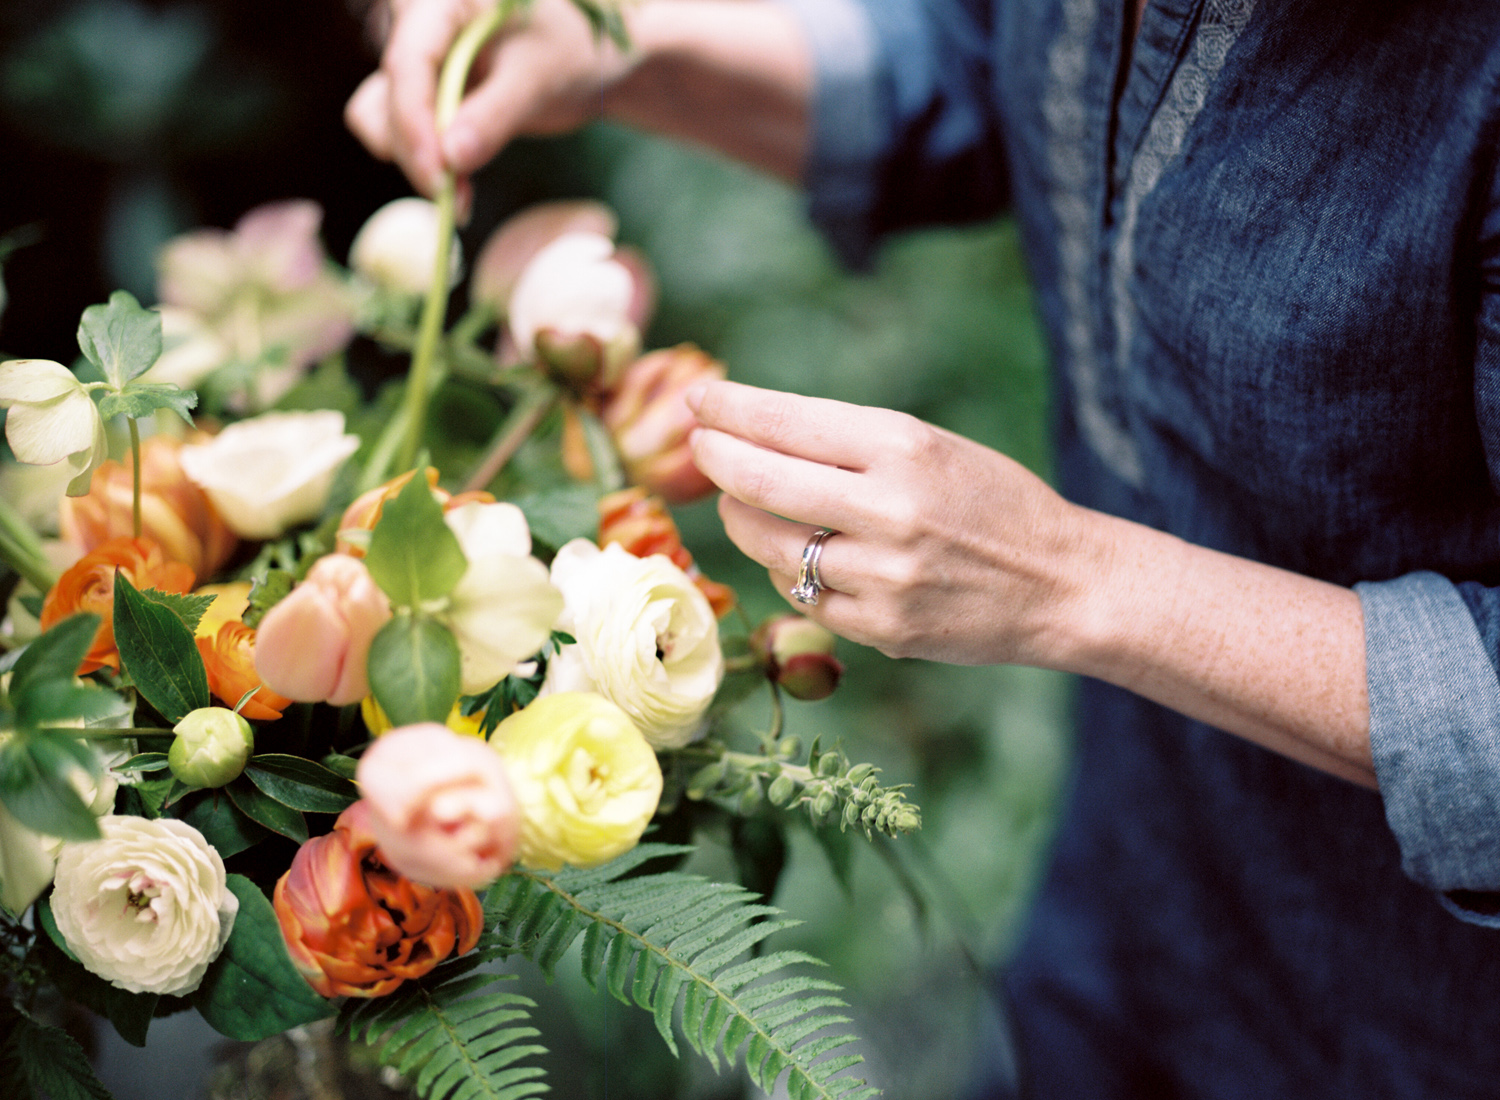 seattle wedding florist smashing petals.jpg